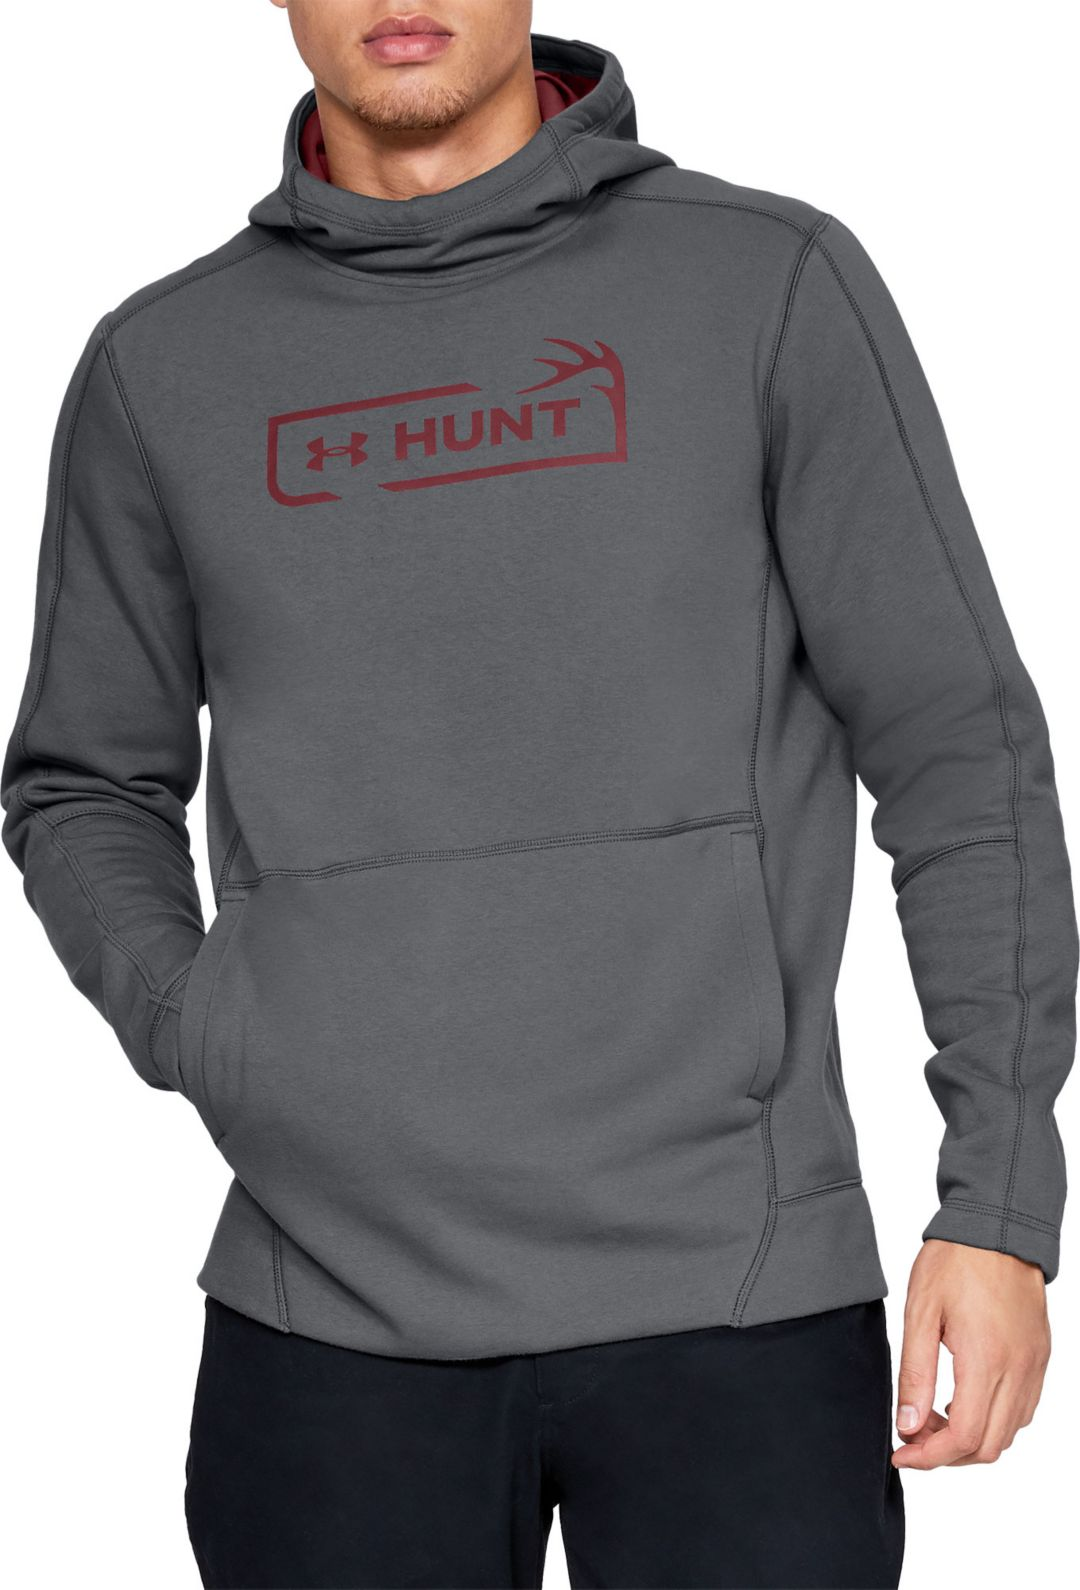 0bf4b3e6 Under Armour Men's Rival Fleece Hunt Icon Hoodie. noImageFound. Previous